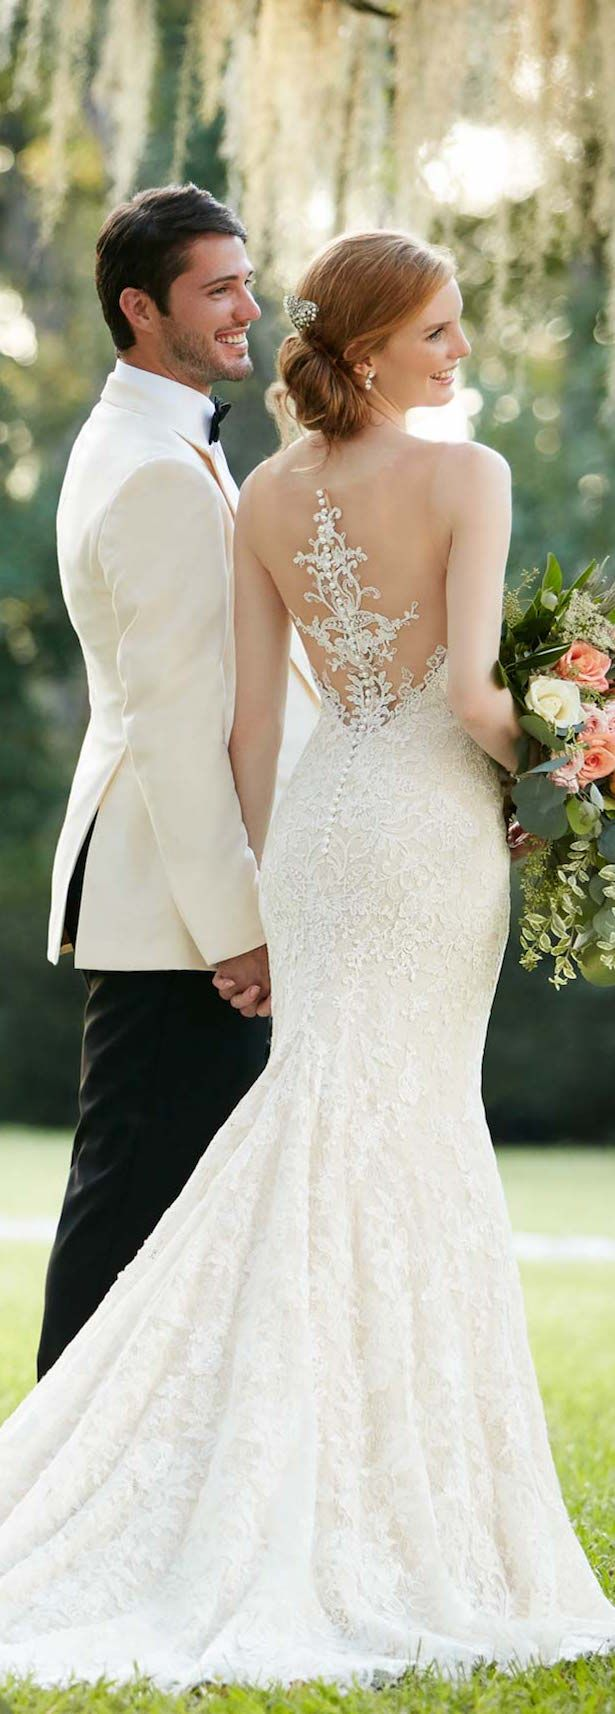 best images about bodas wedding on pinterest mesas